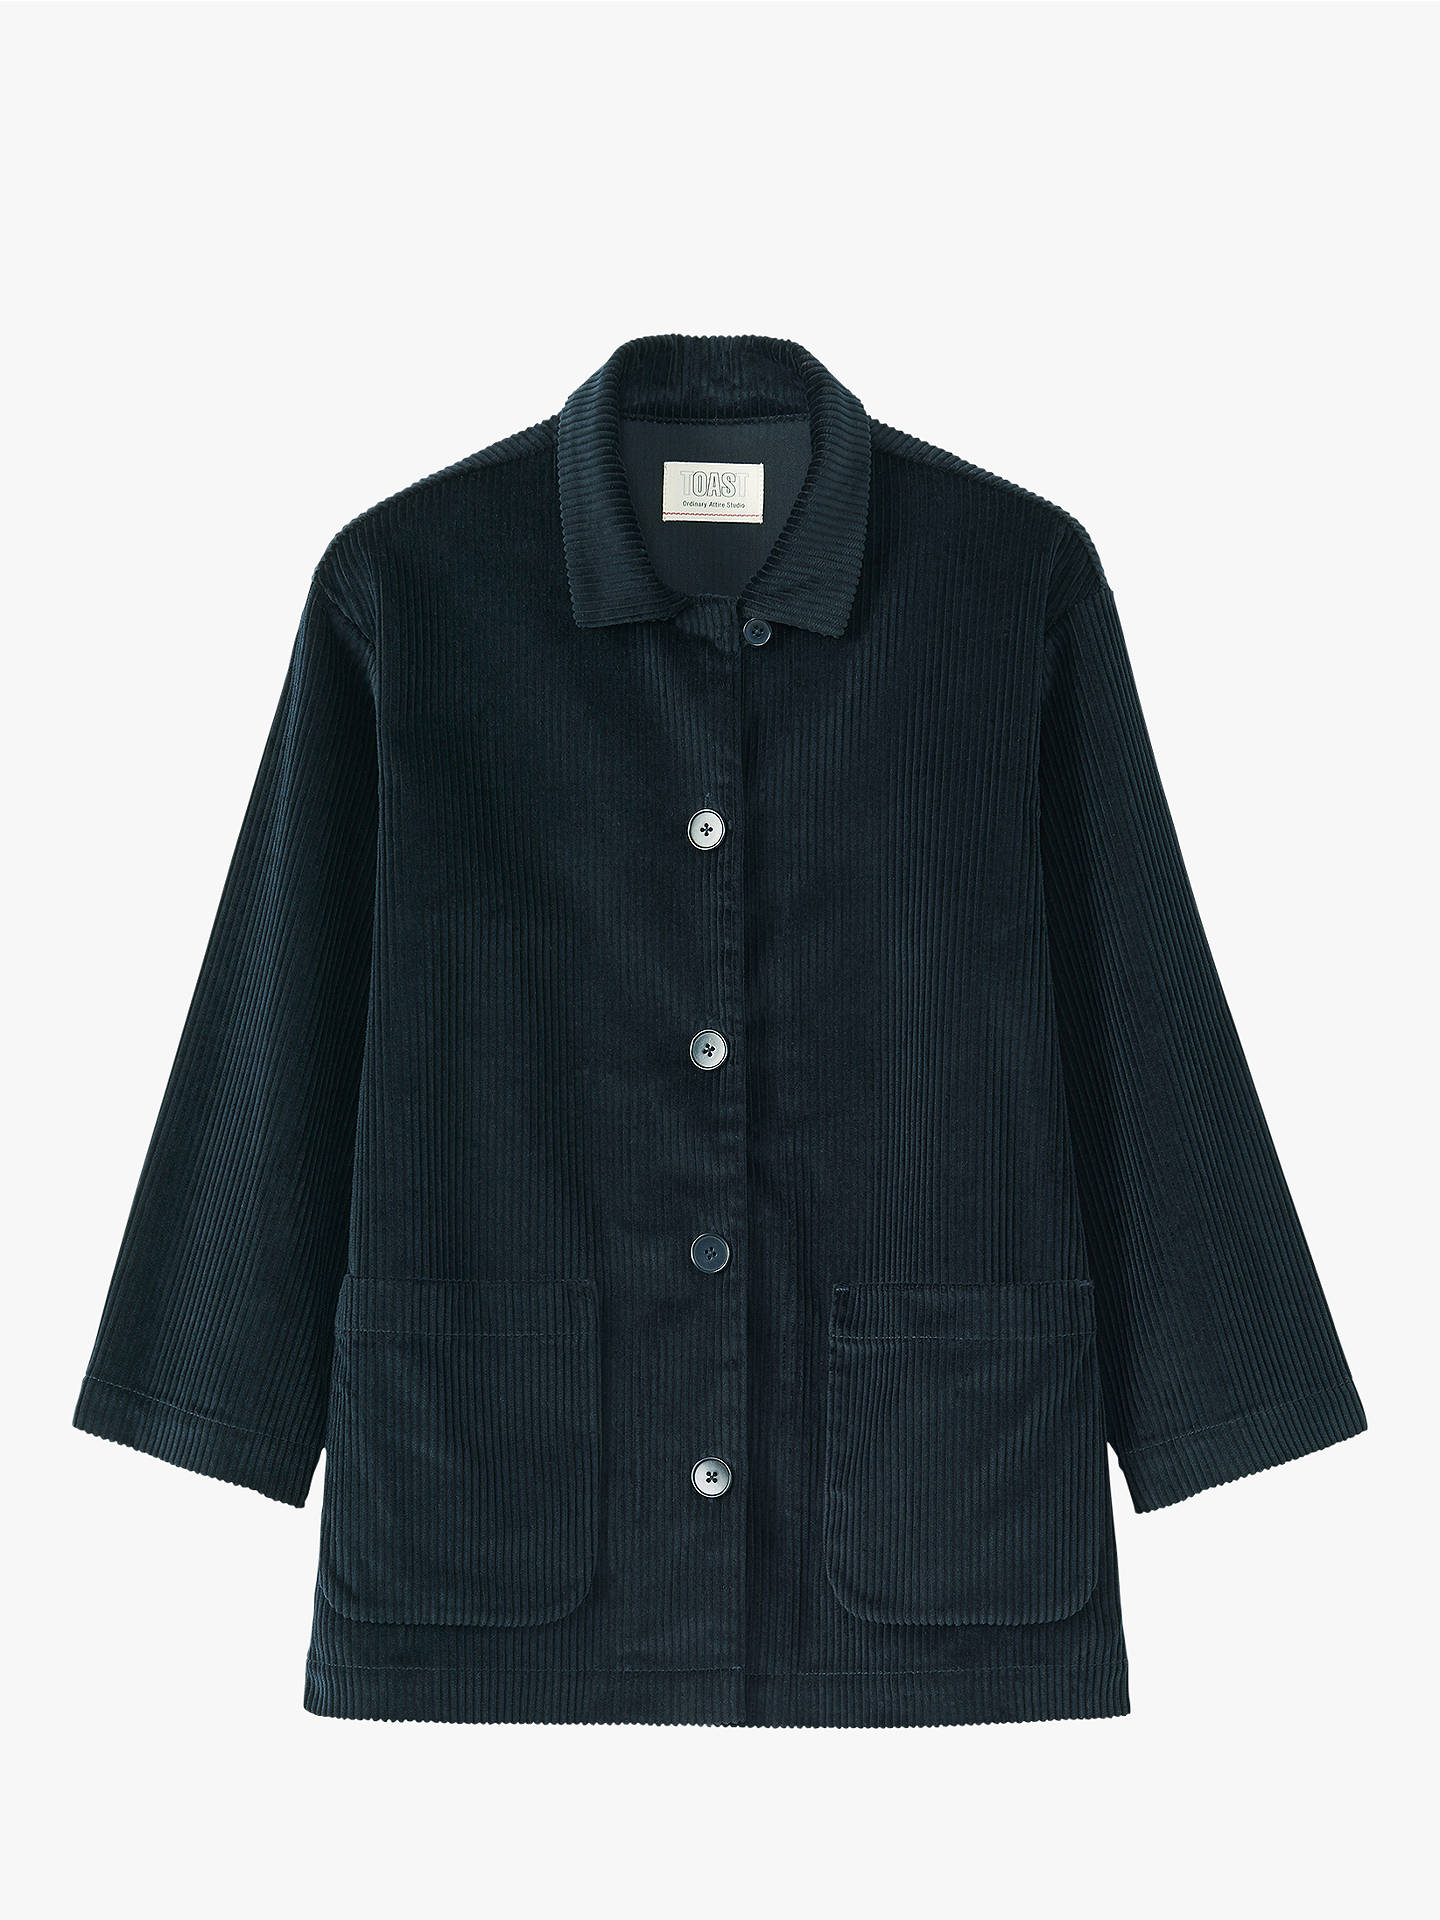 BuyToast Cotton Cord Jacket, Anthracite Blue, 14 Online at johnlewis.com